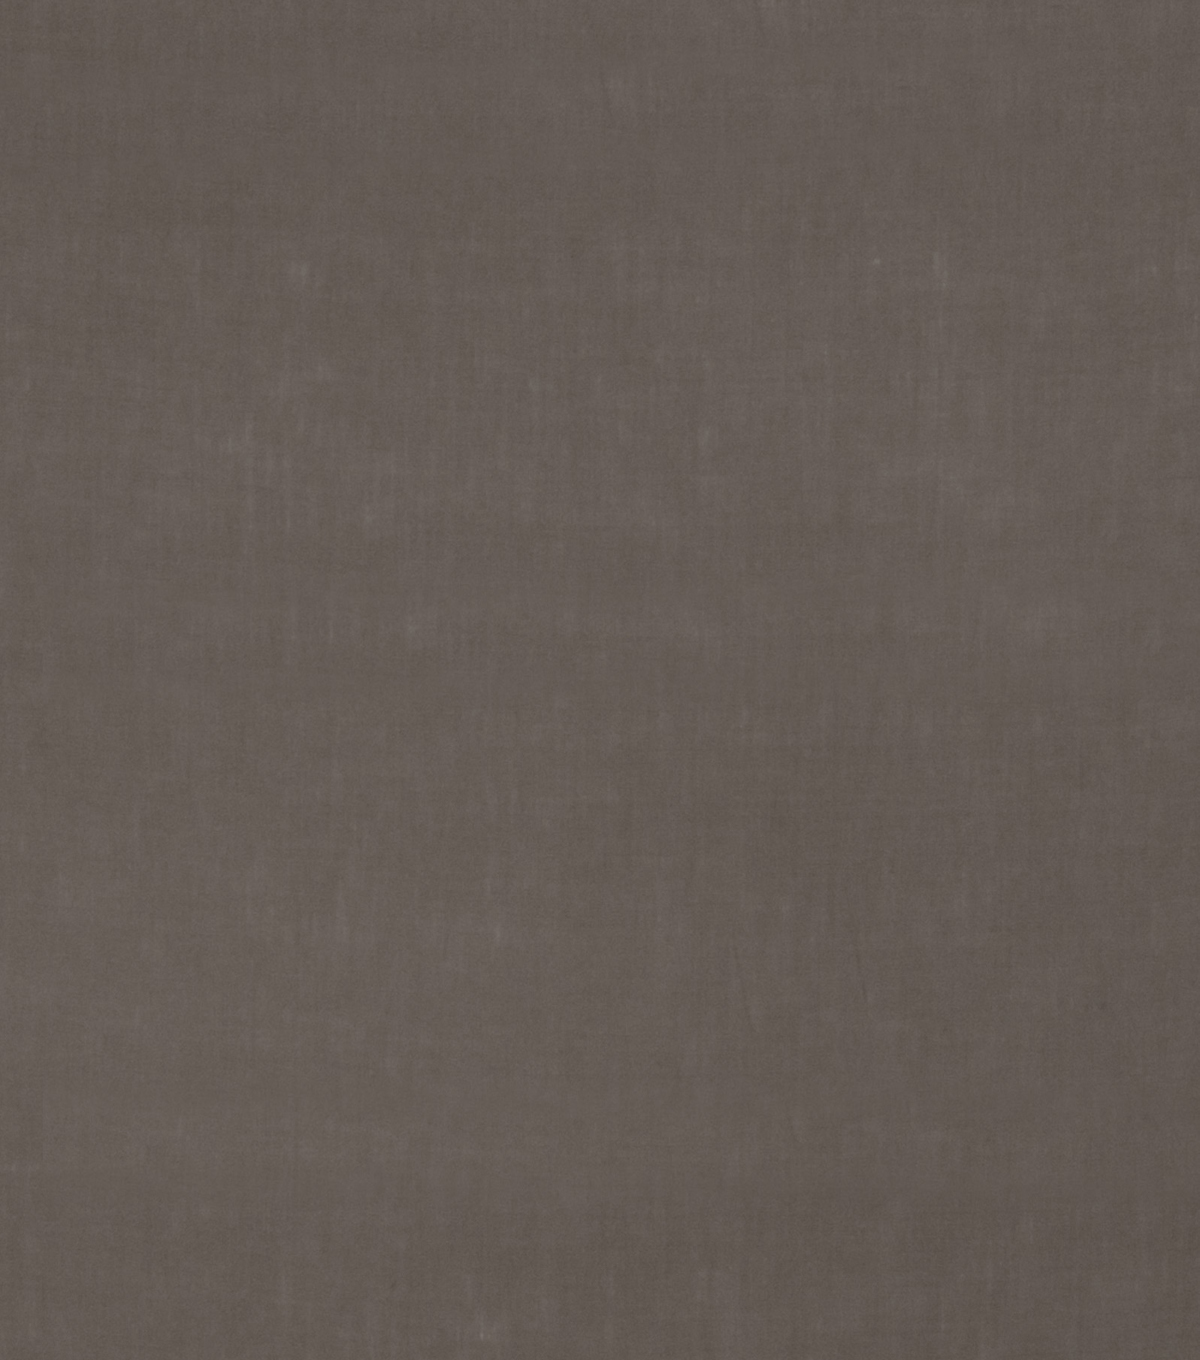 Home Decor 8\u0022x8\u0022 Fabric Swatch-Signature Series Rockford Linen Lichen